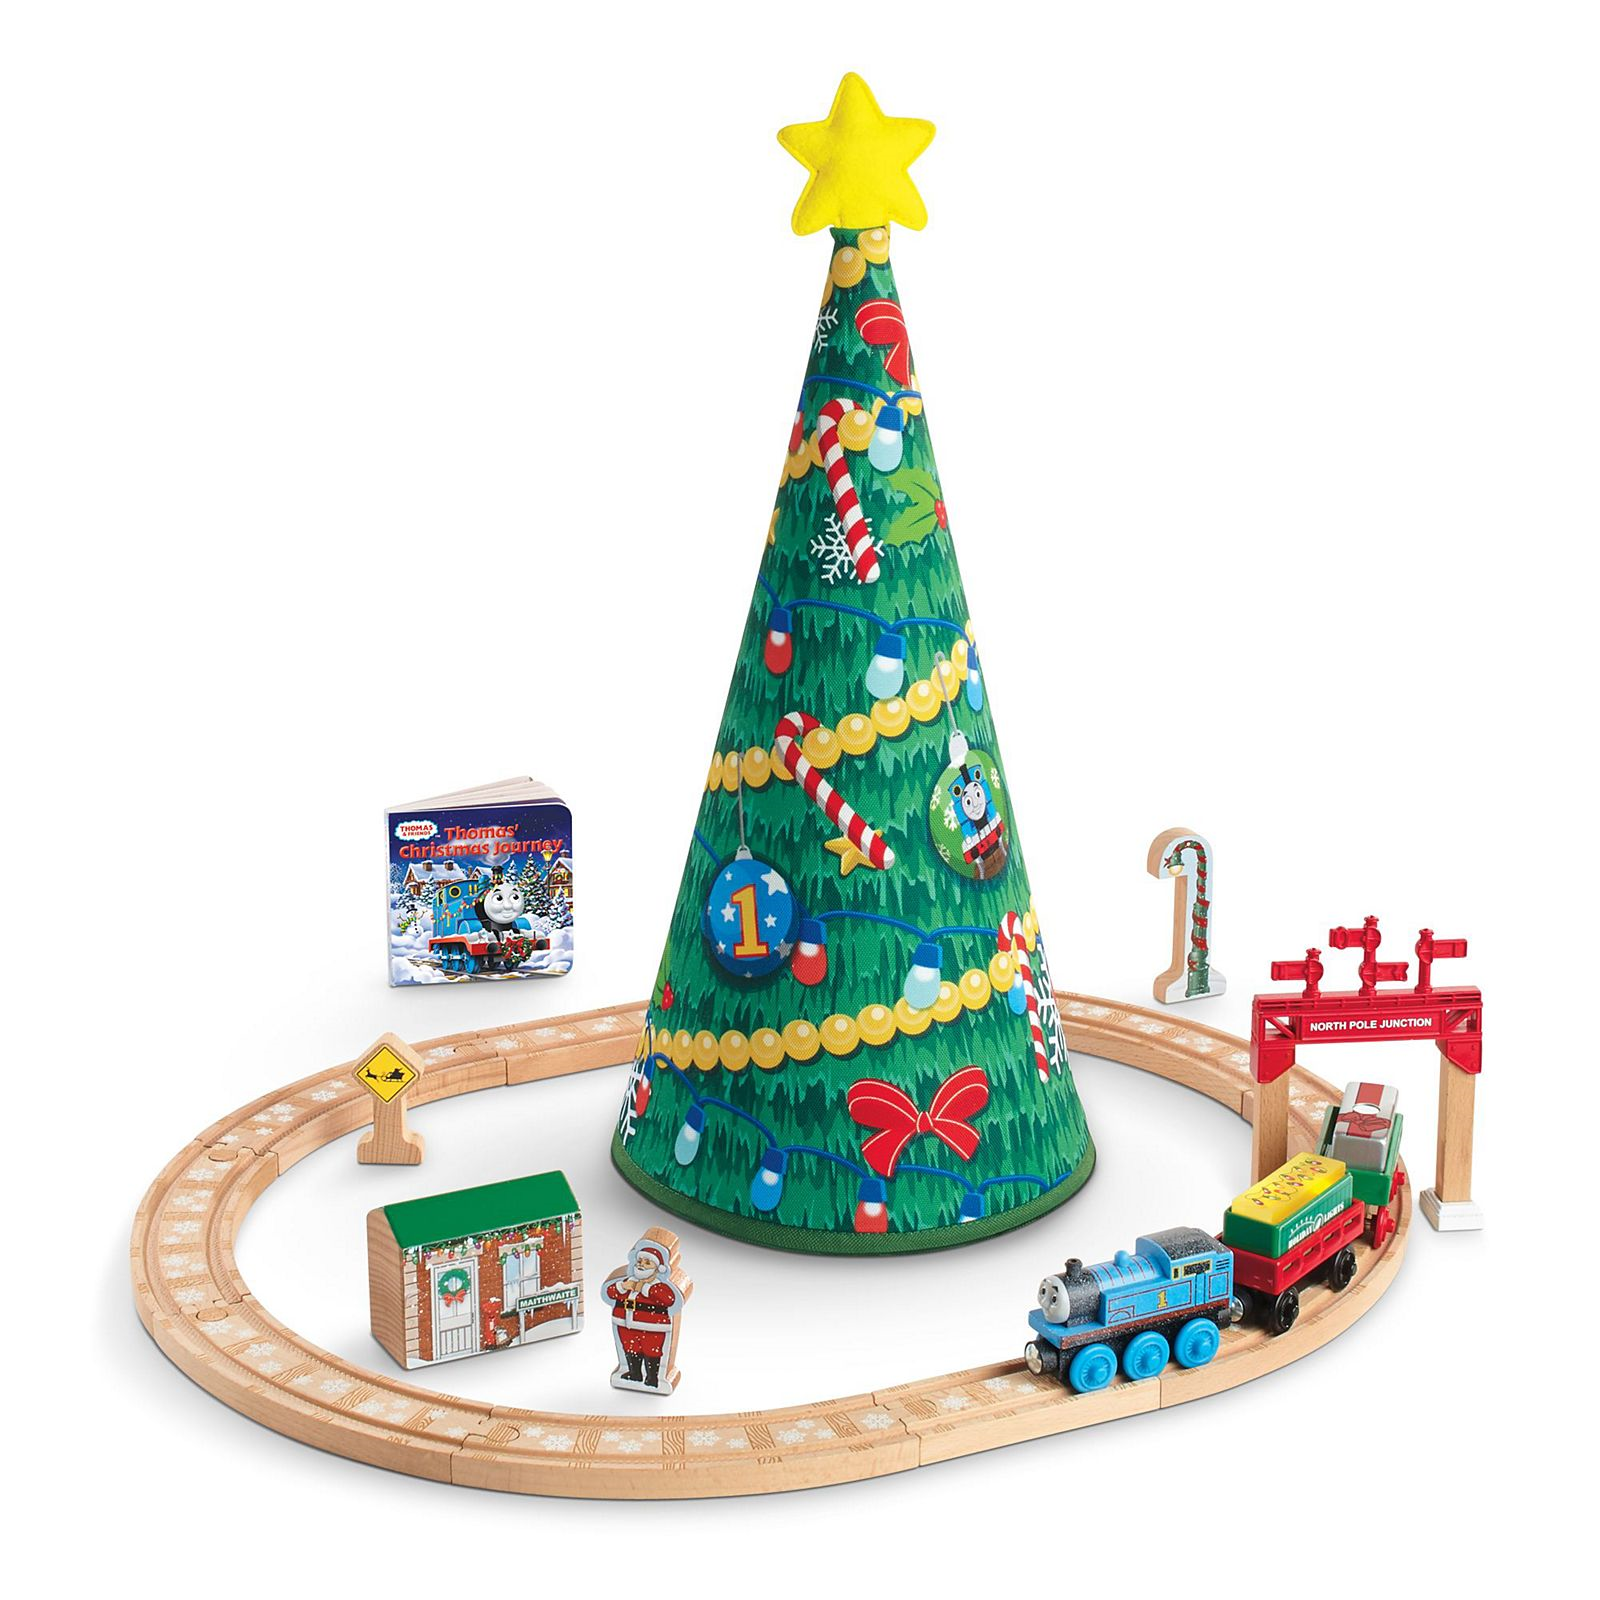 Thomas\' Christmas Wonderland Set | Thomas Wood Wiki | FANDOM powered ...